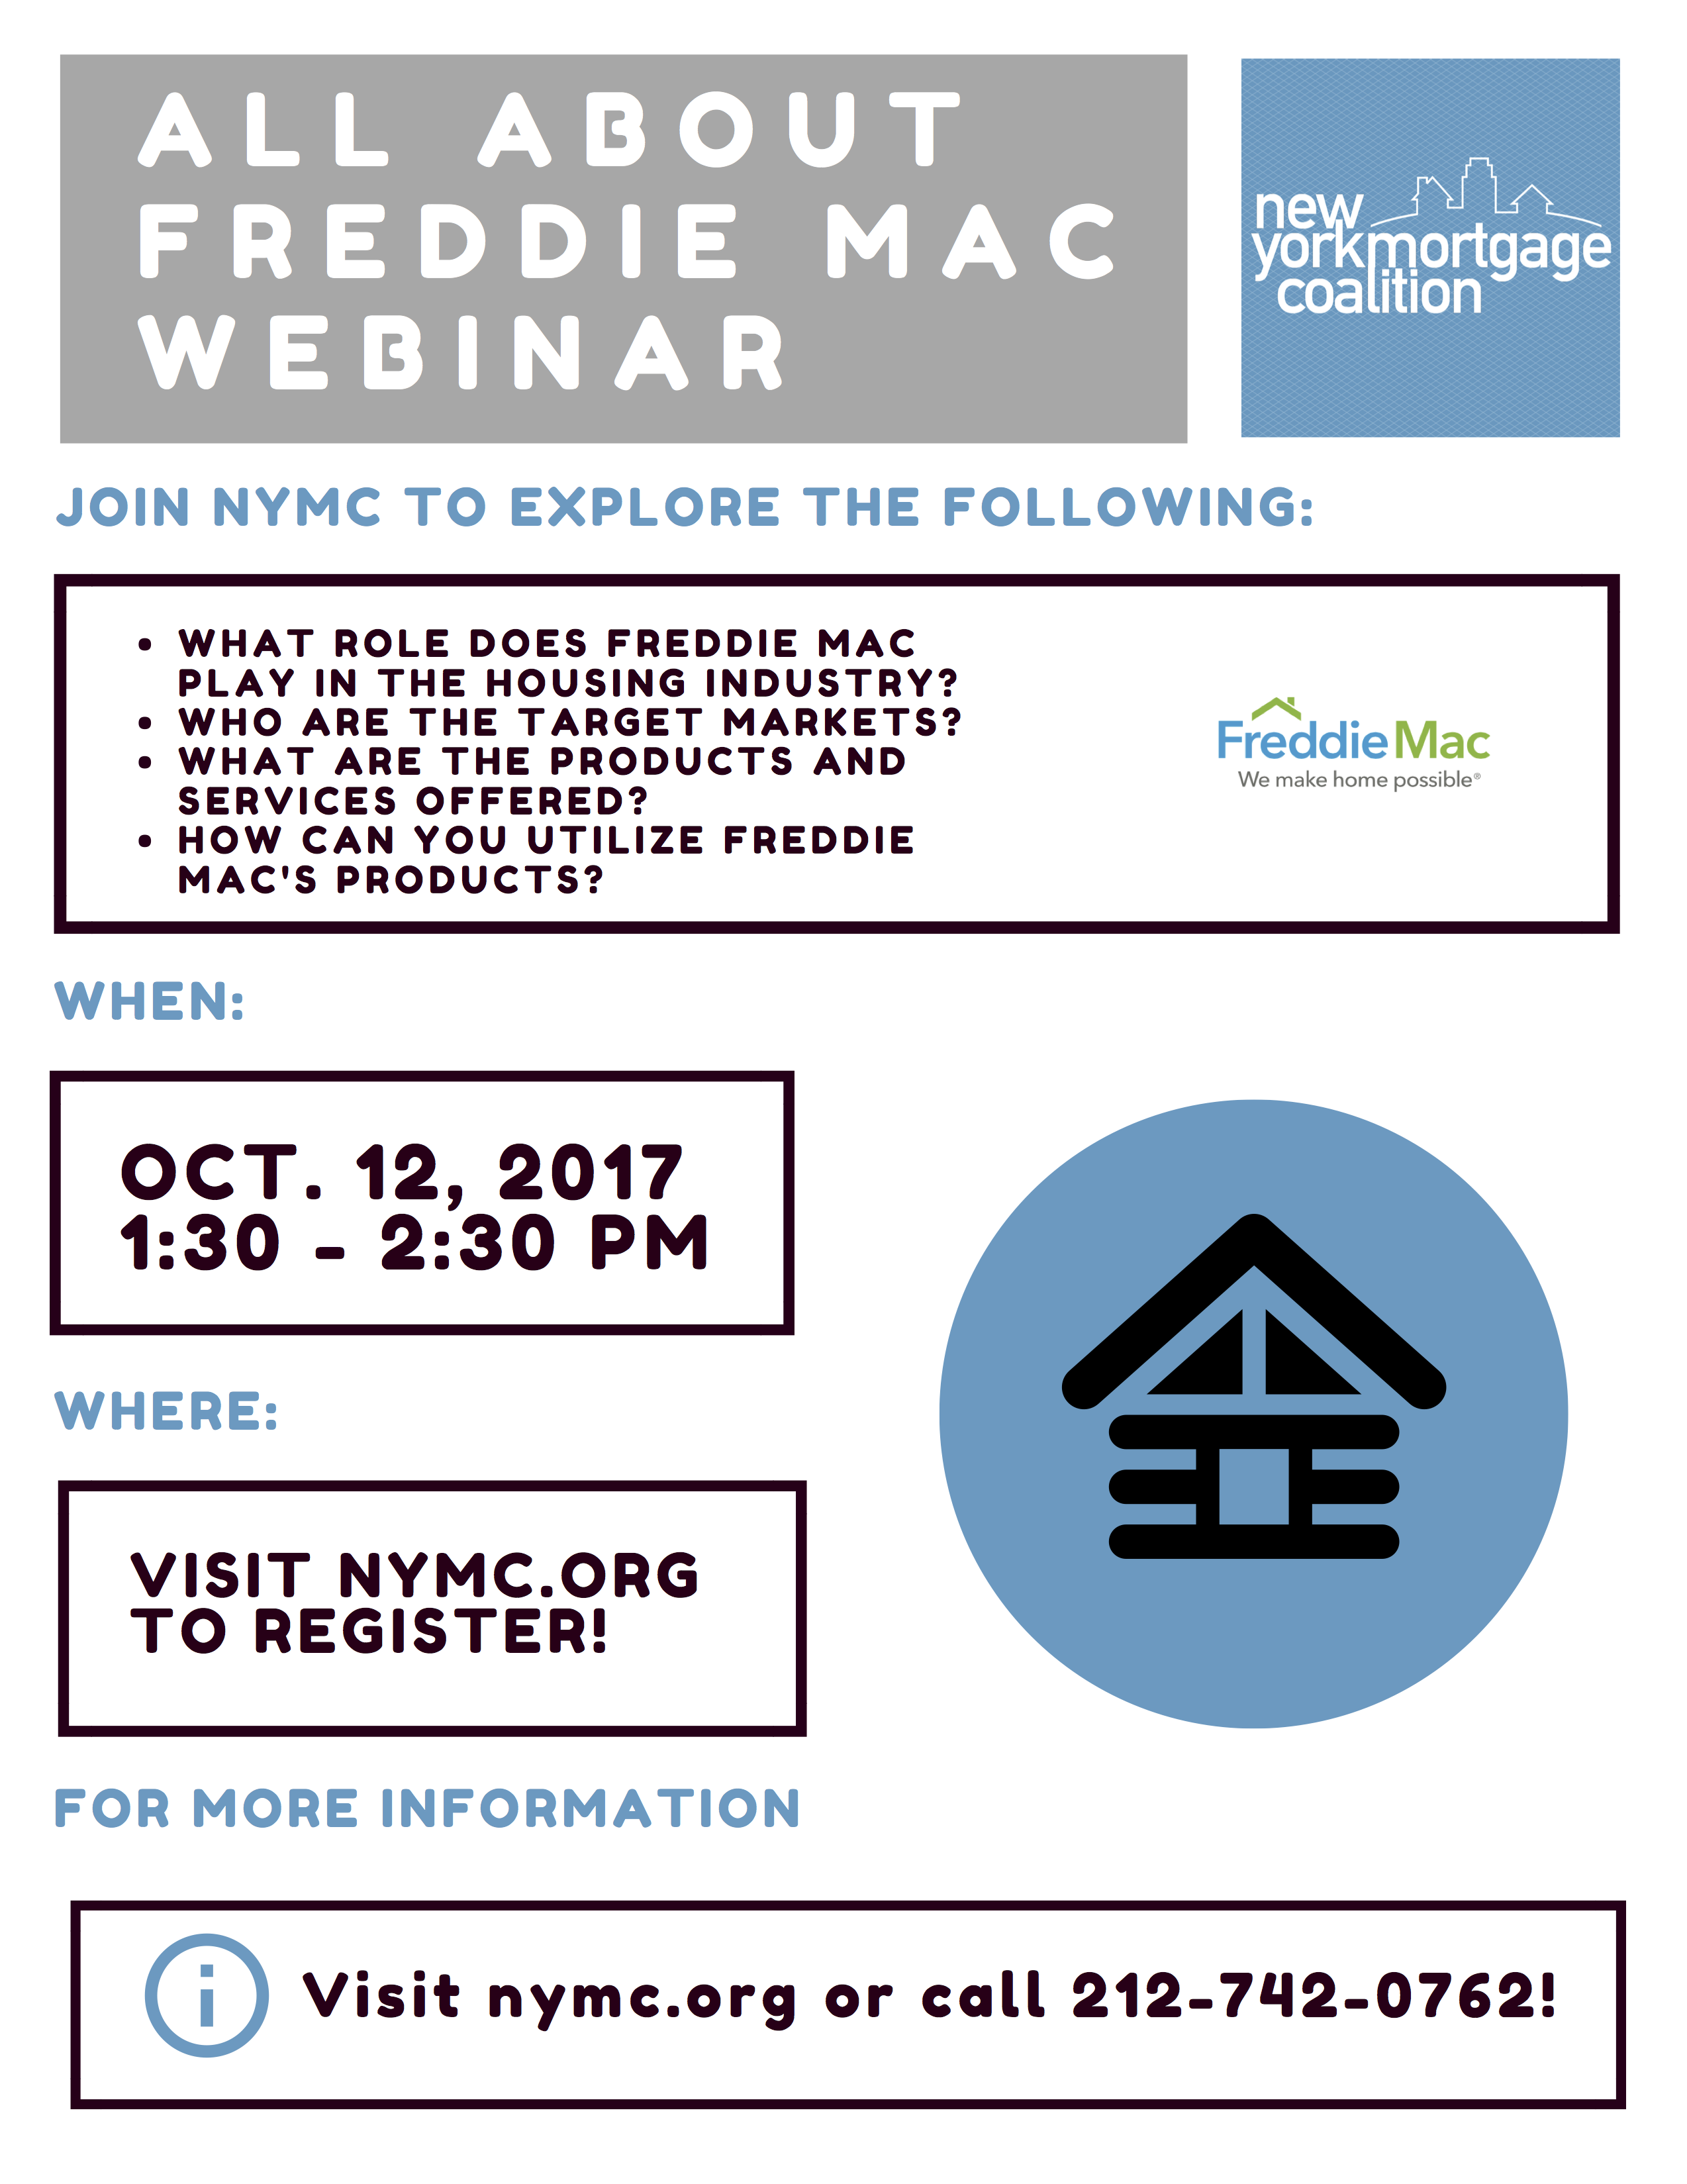 Join NYMC For An Informational Webinar All About Freddie Mac on October 12